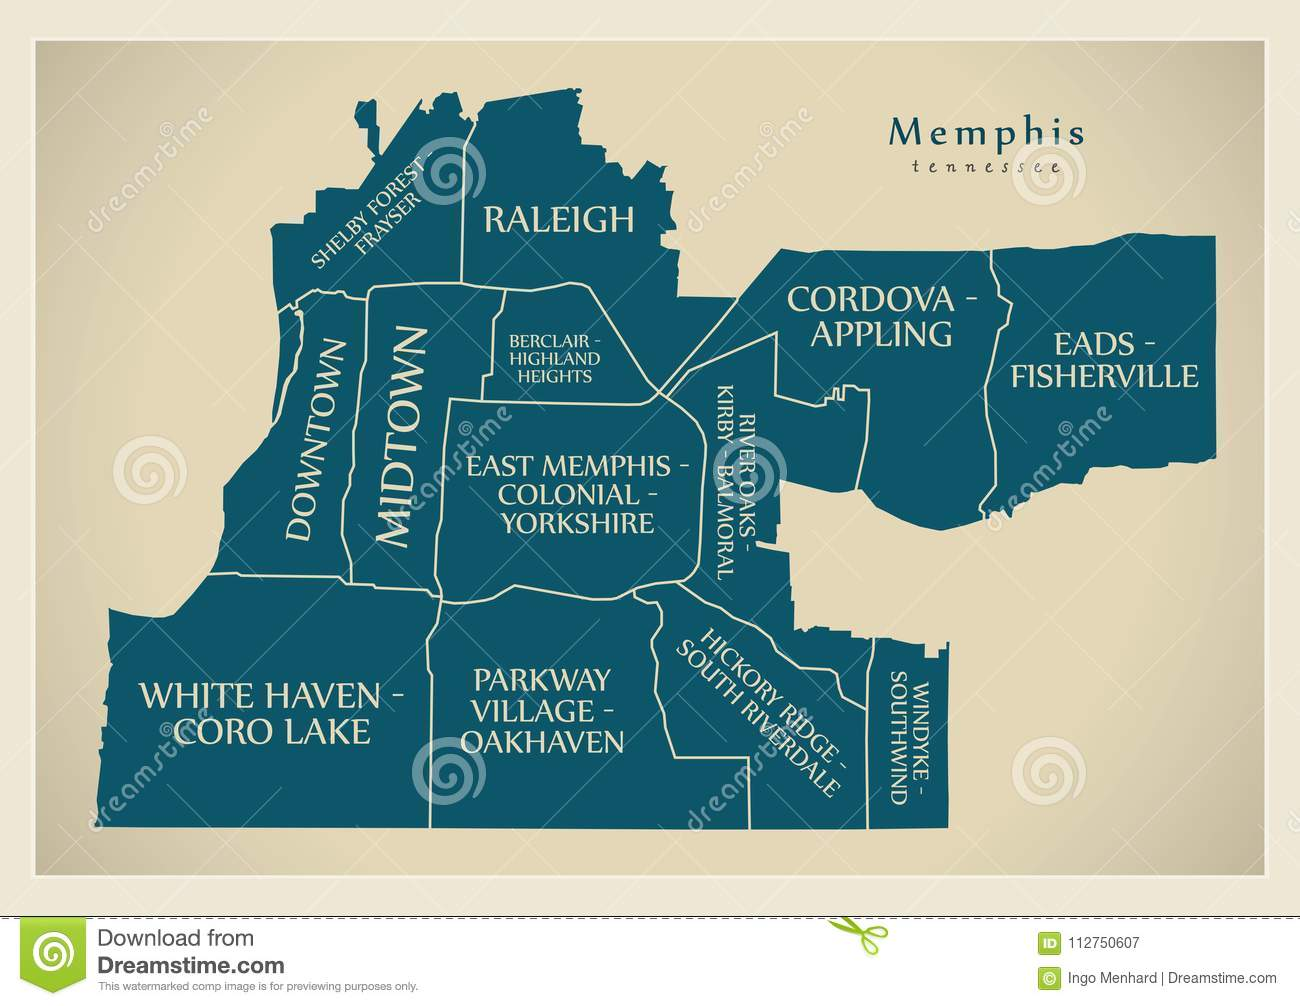 modern city map memphis tennessee city of the usa with neighbo